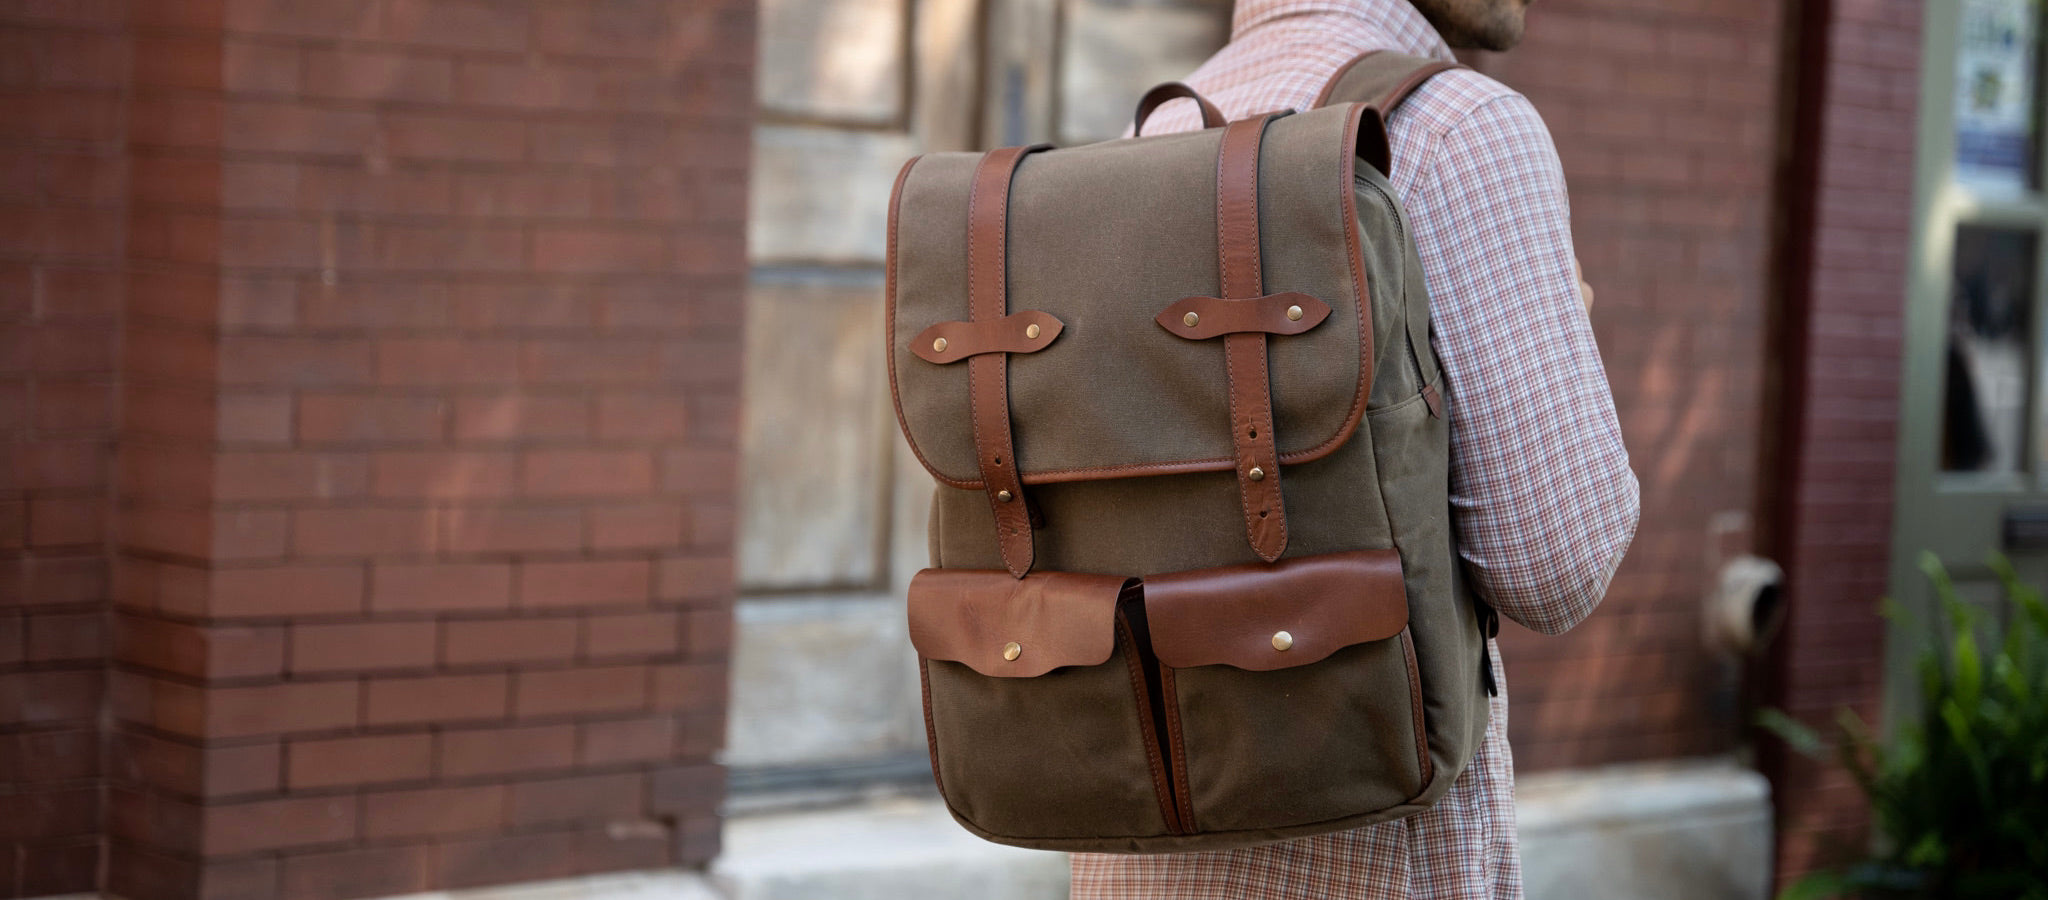 Jackson Wayne Founder's Backpack in waxed canvas and full grain leather